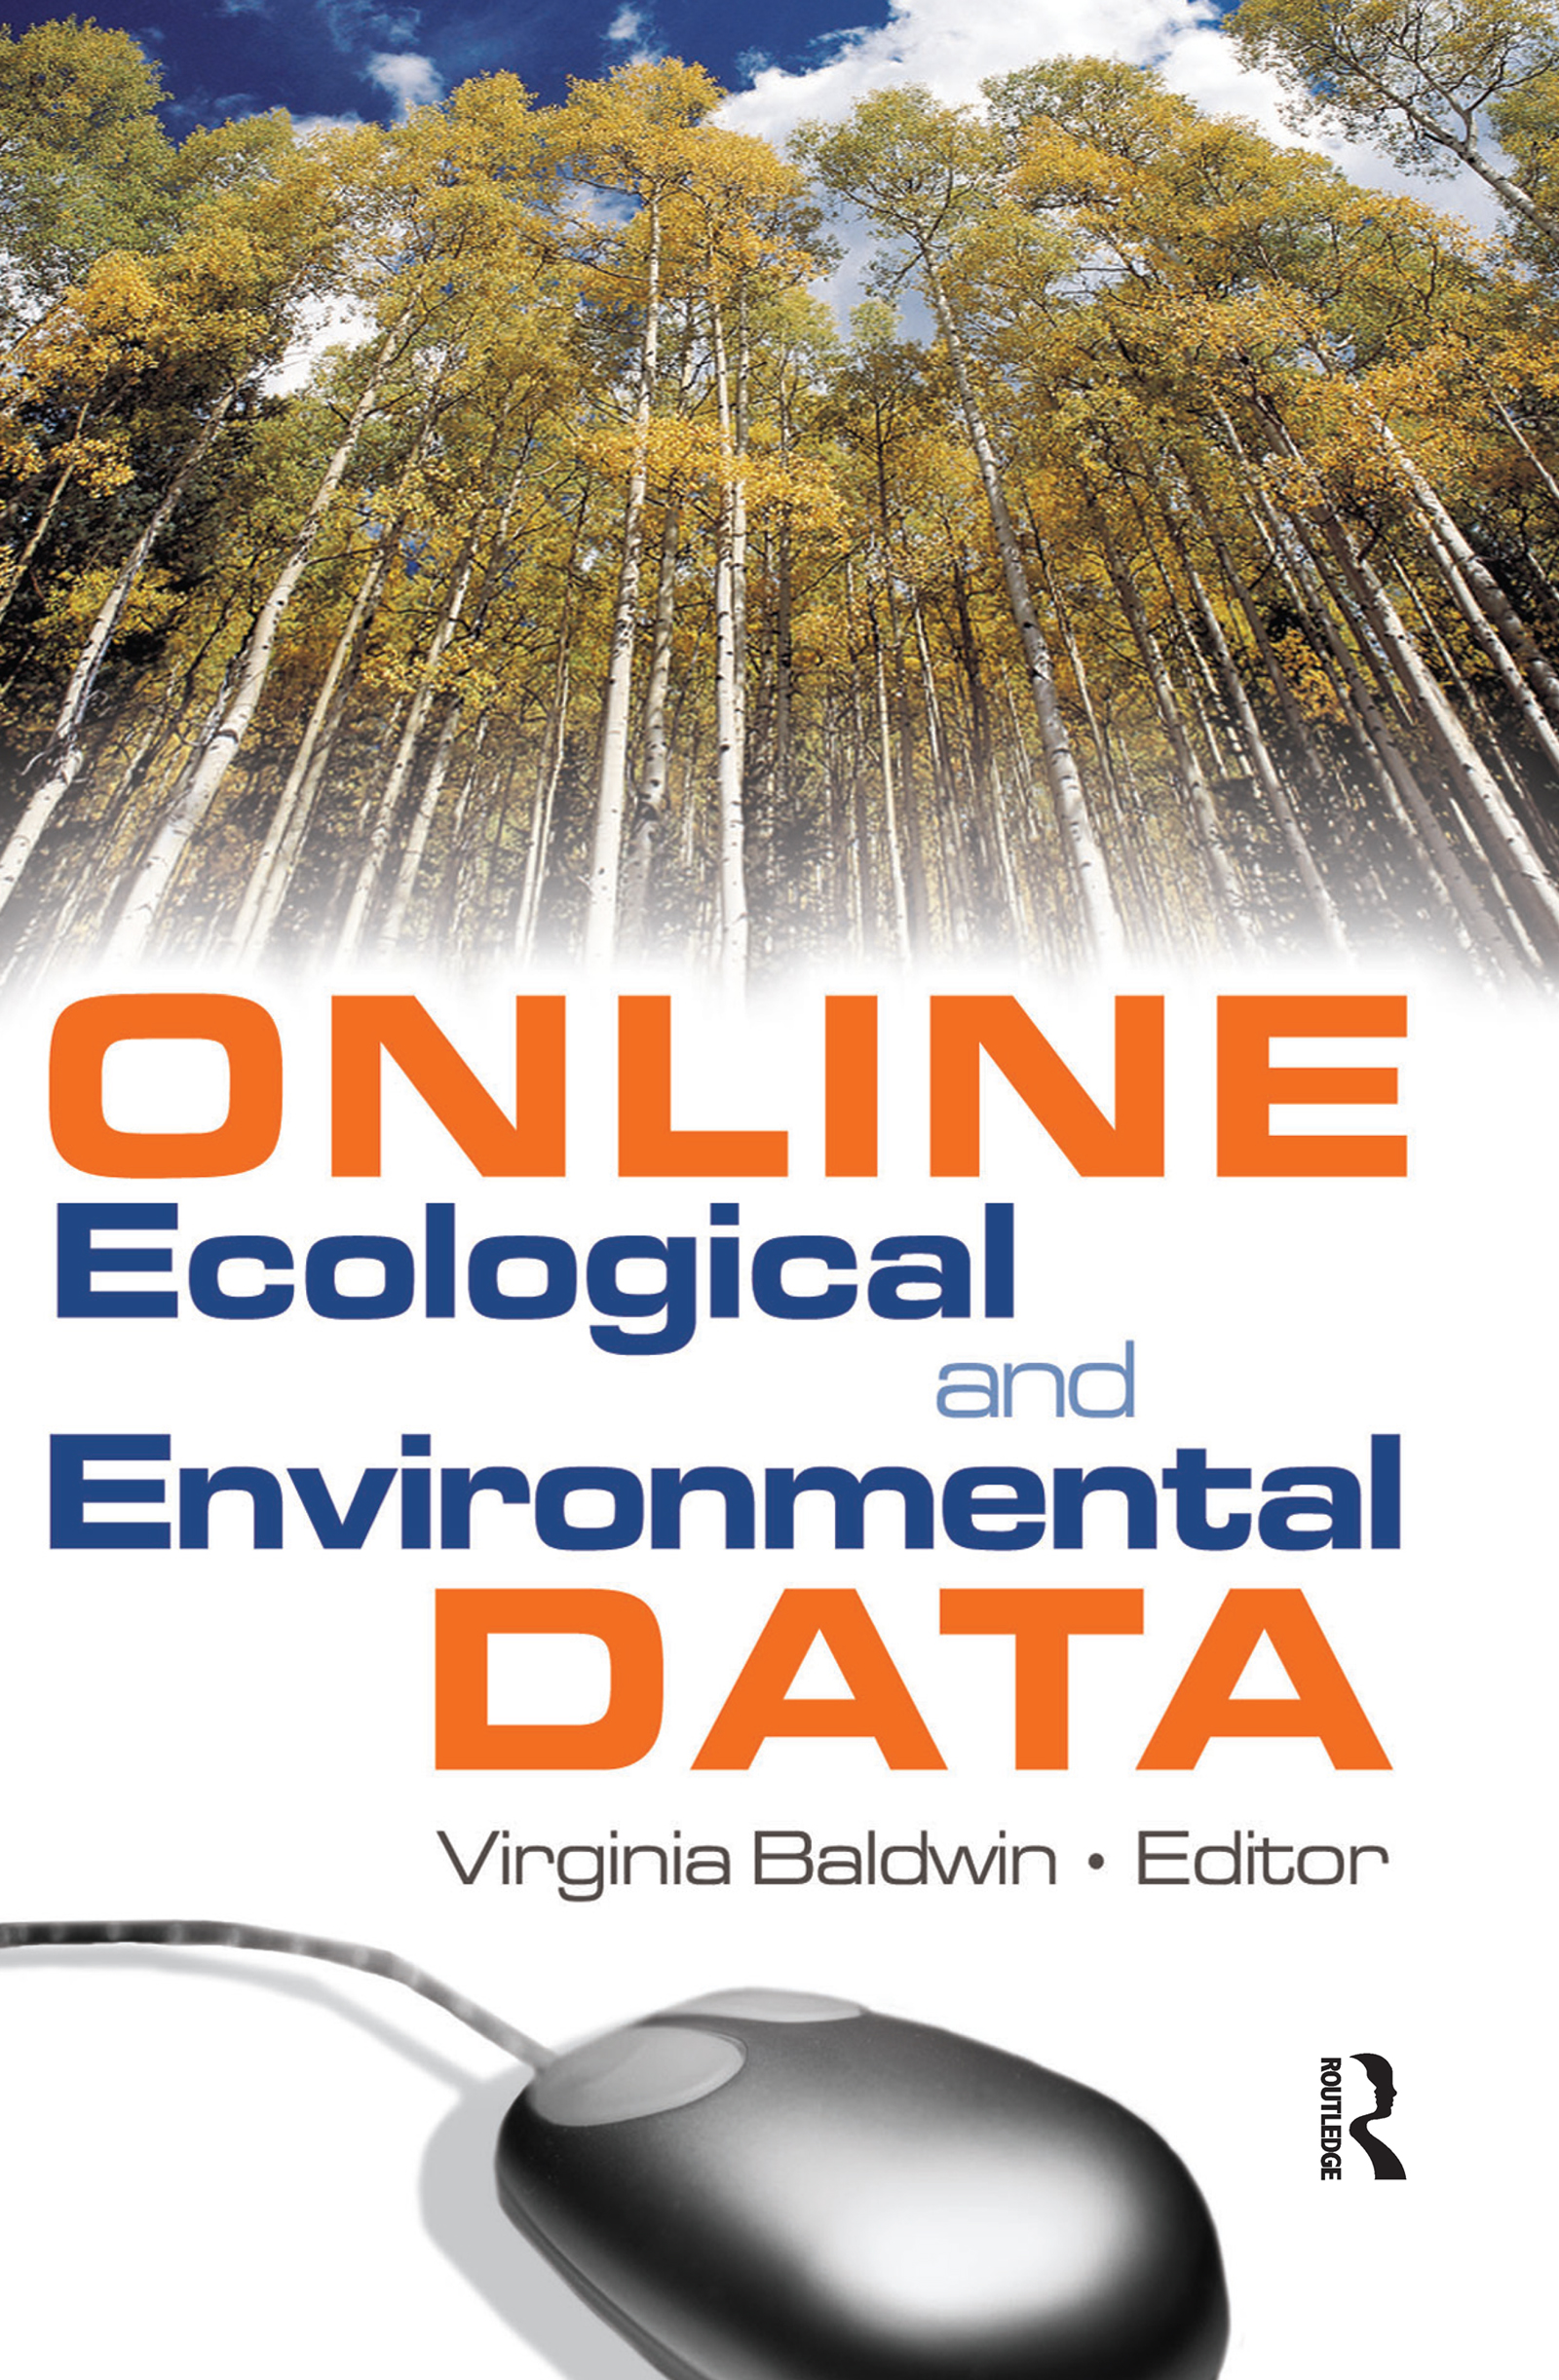 Online Ecological and Environmental Data book cover